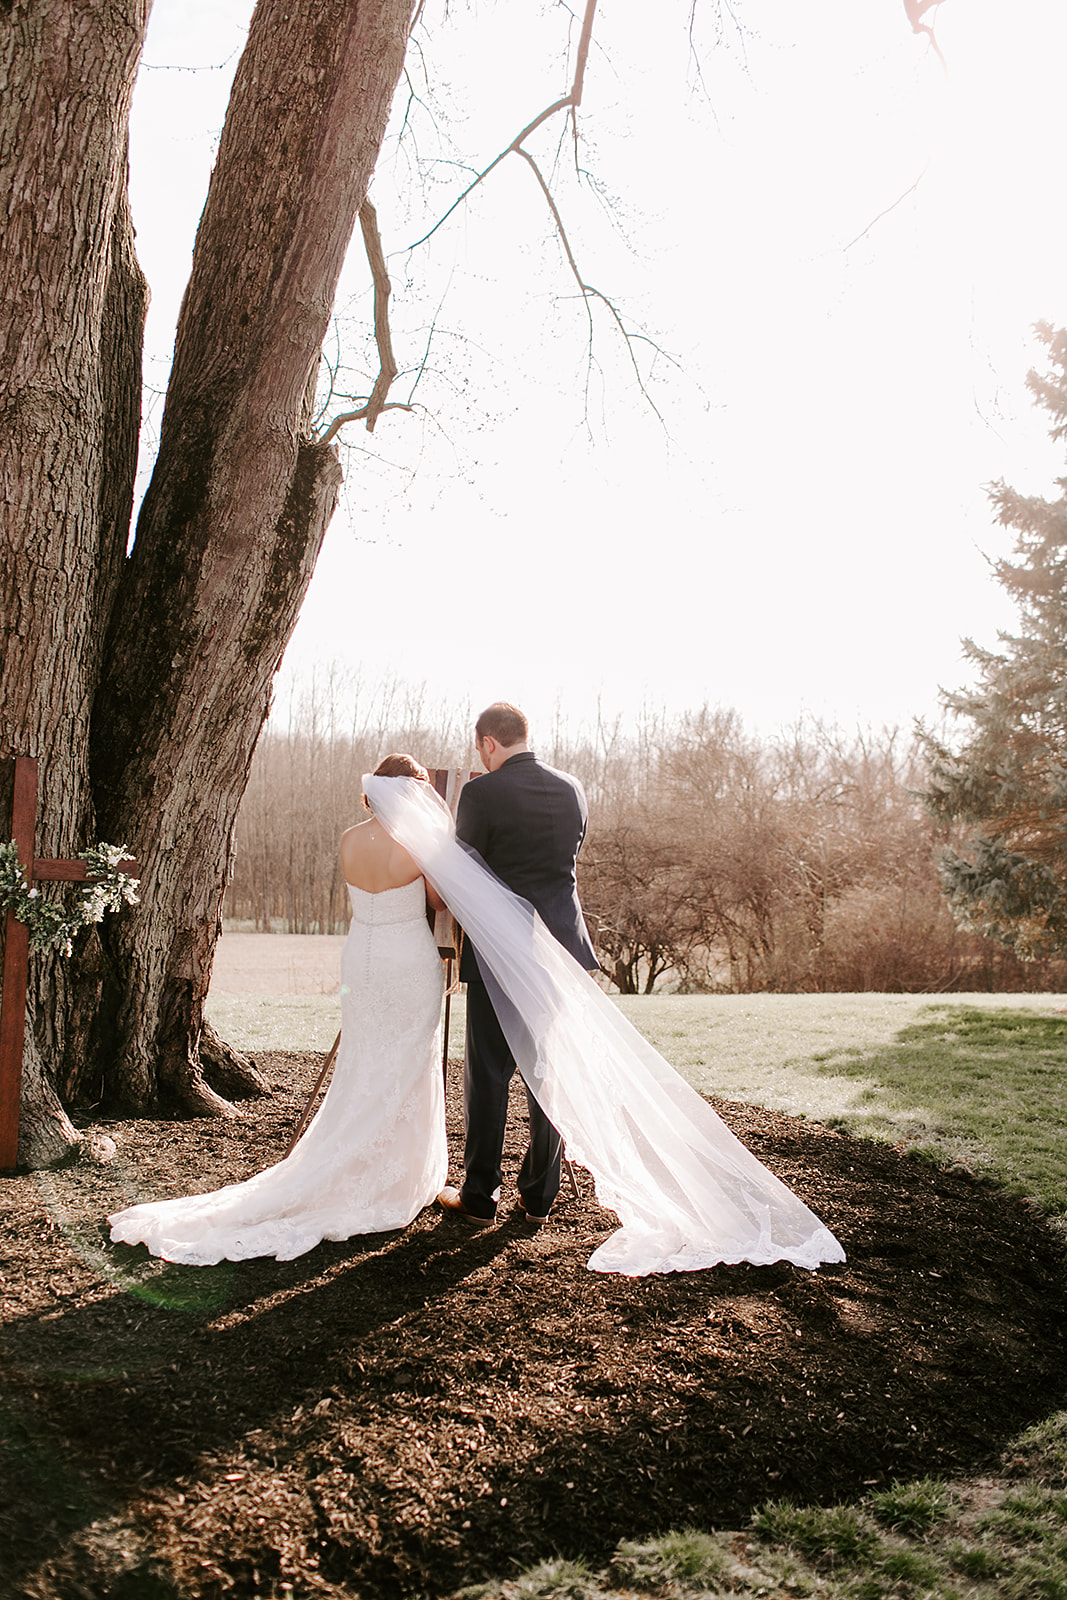 Lauren_and_Andrew_Mustard_Seed_Gardens_Noblesville_Indiana_by_Emily_Wehner_Photography-529.jpg